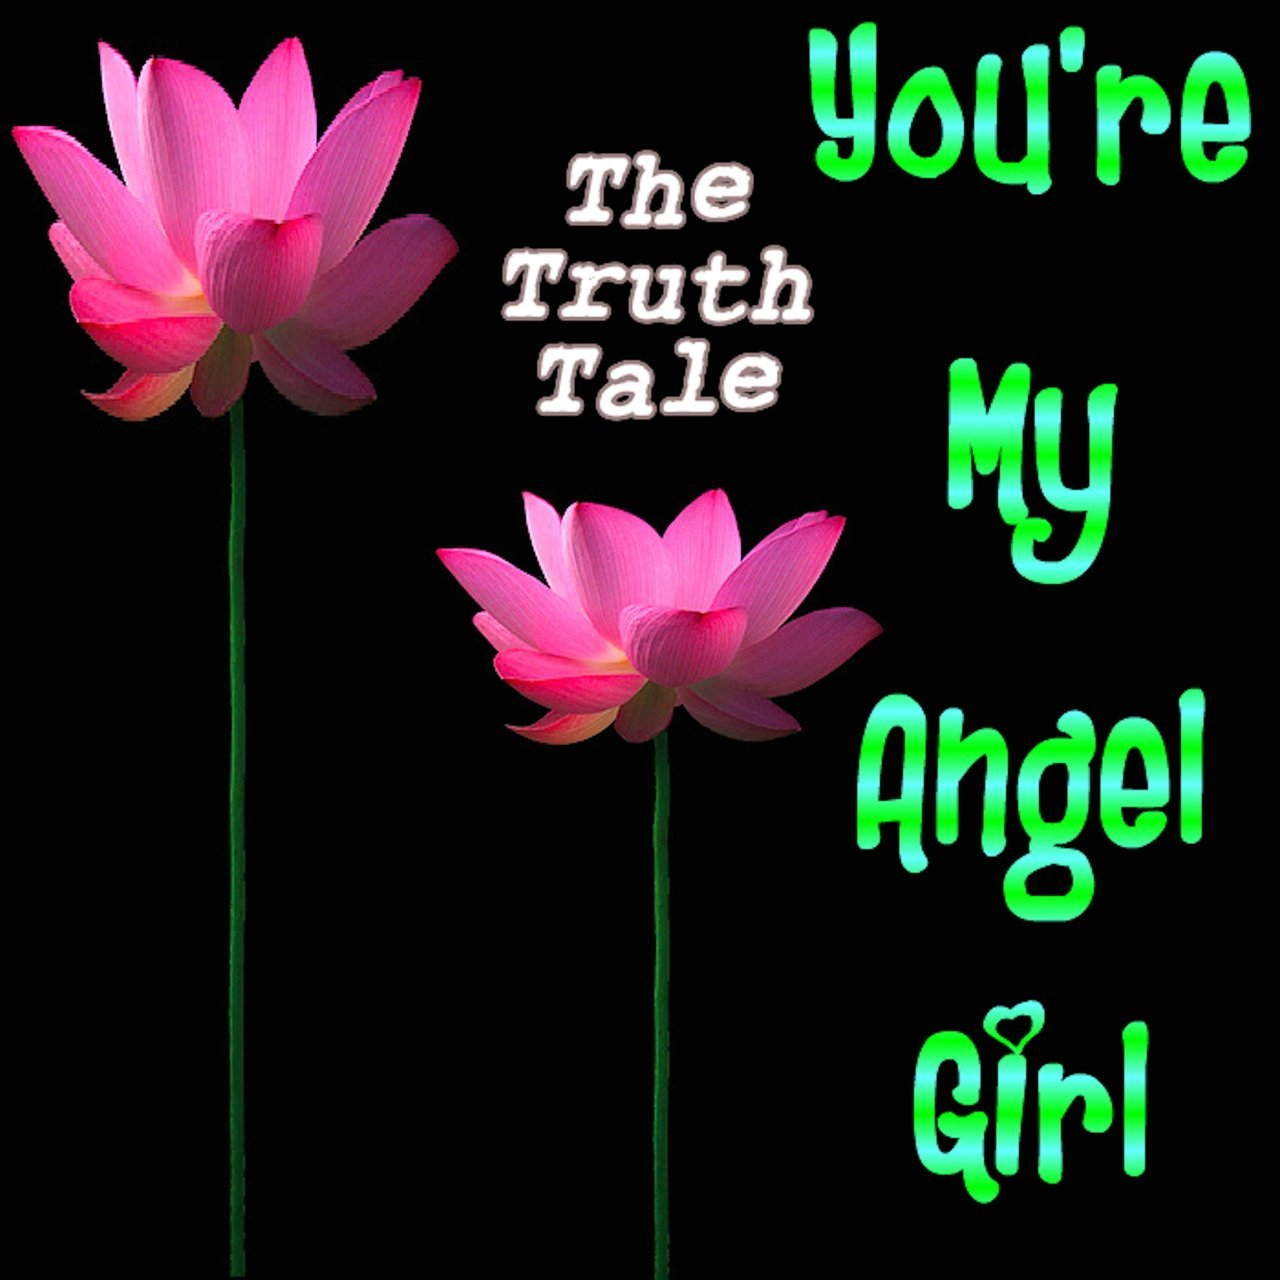 You're My Angel Girl (Instrumental)